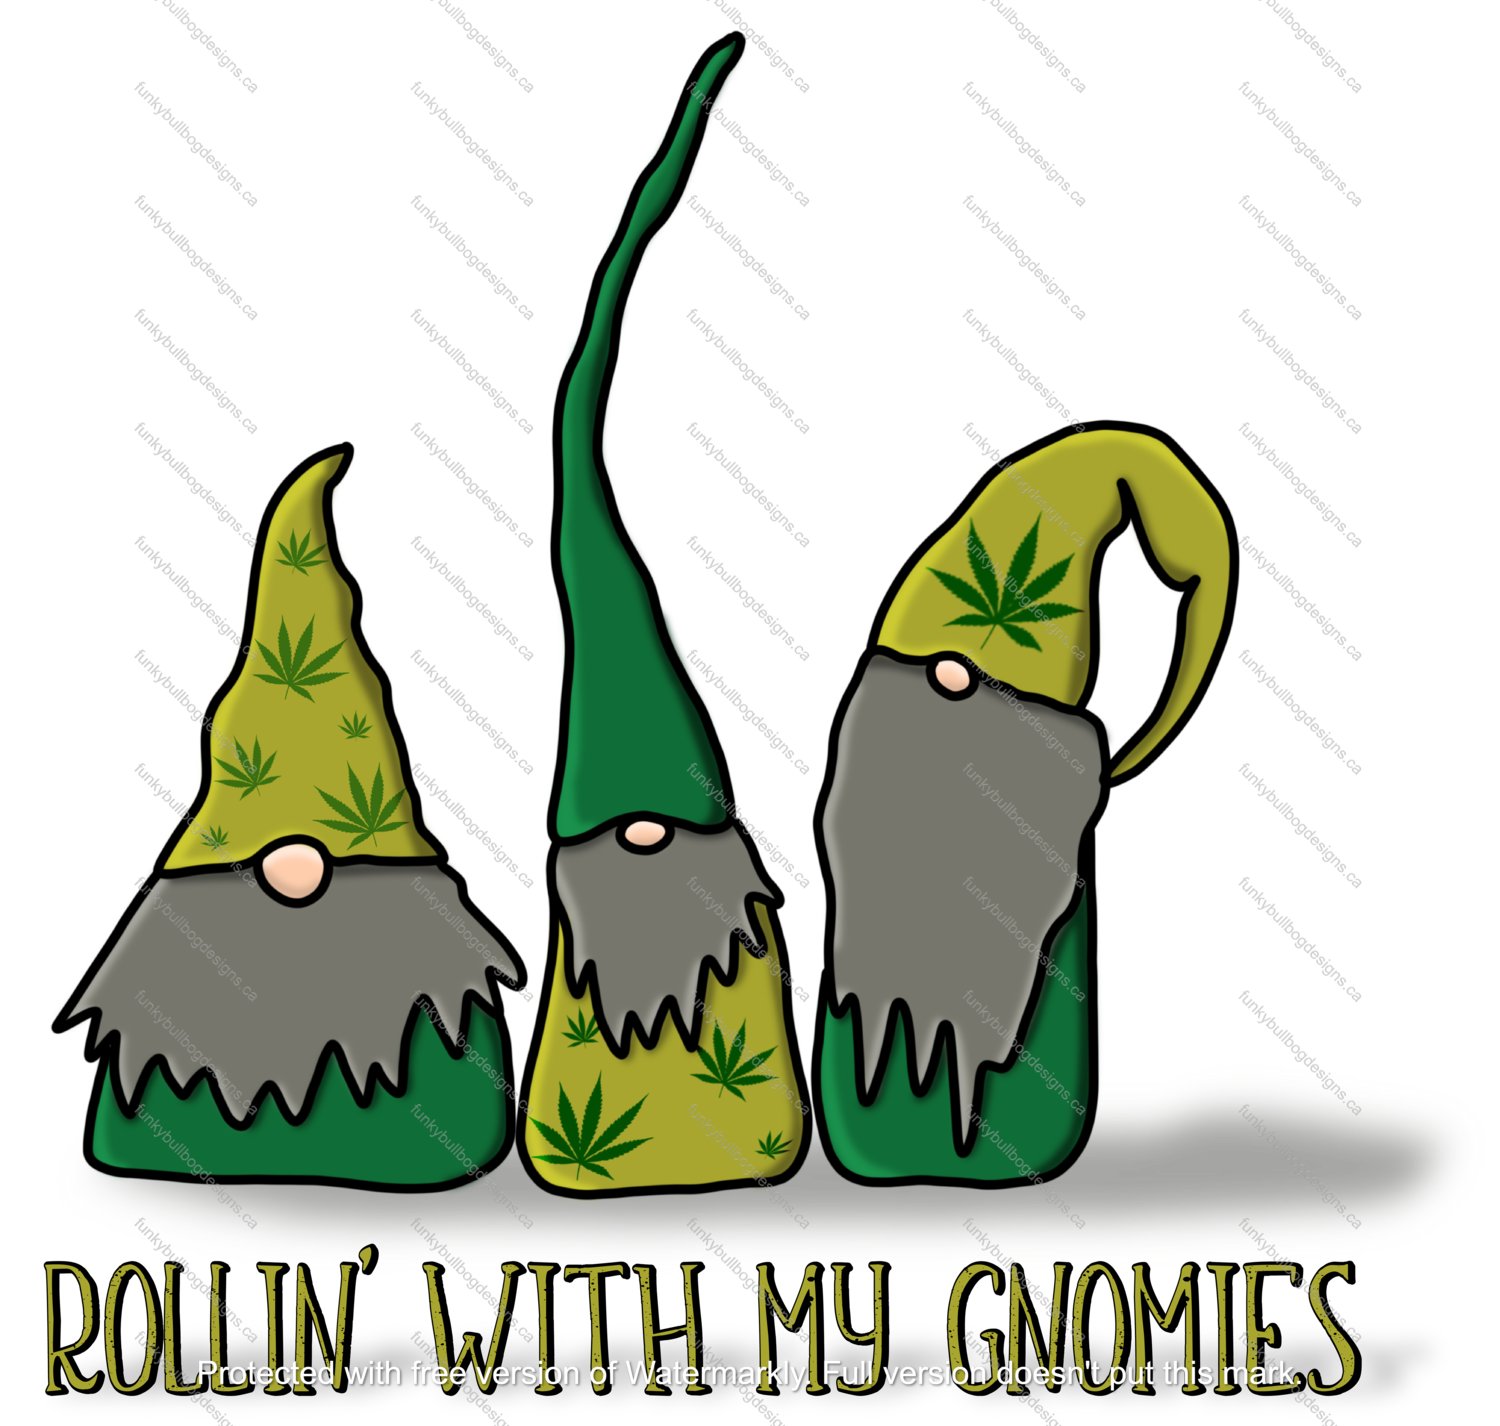 DTF (Direct to Film) Transfer - Rollin' gnomies - weed - full color, no weeding - great for dark or light fabrics *please read entire description